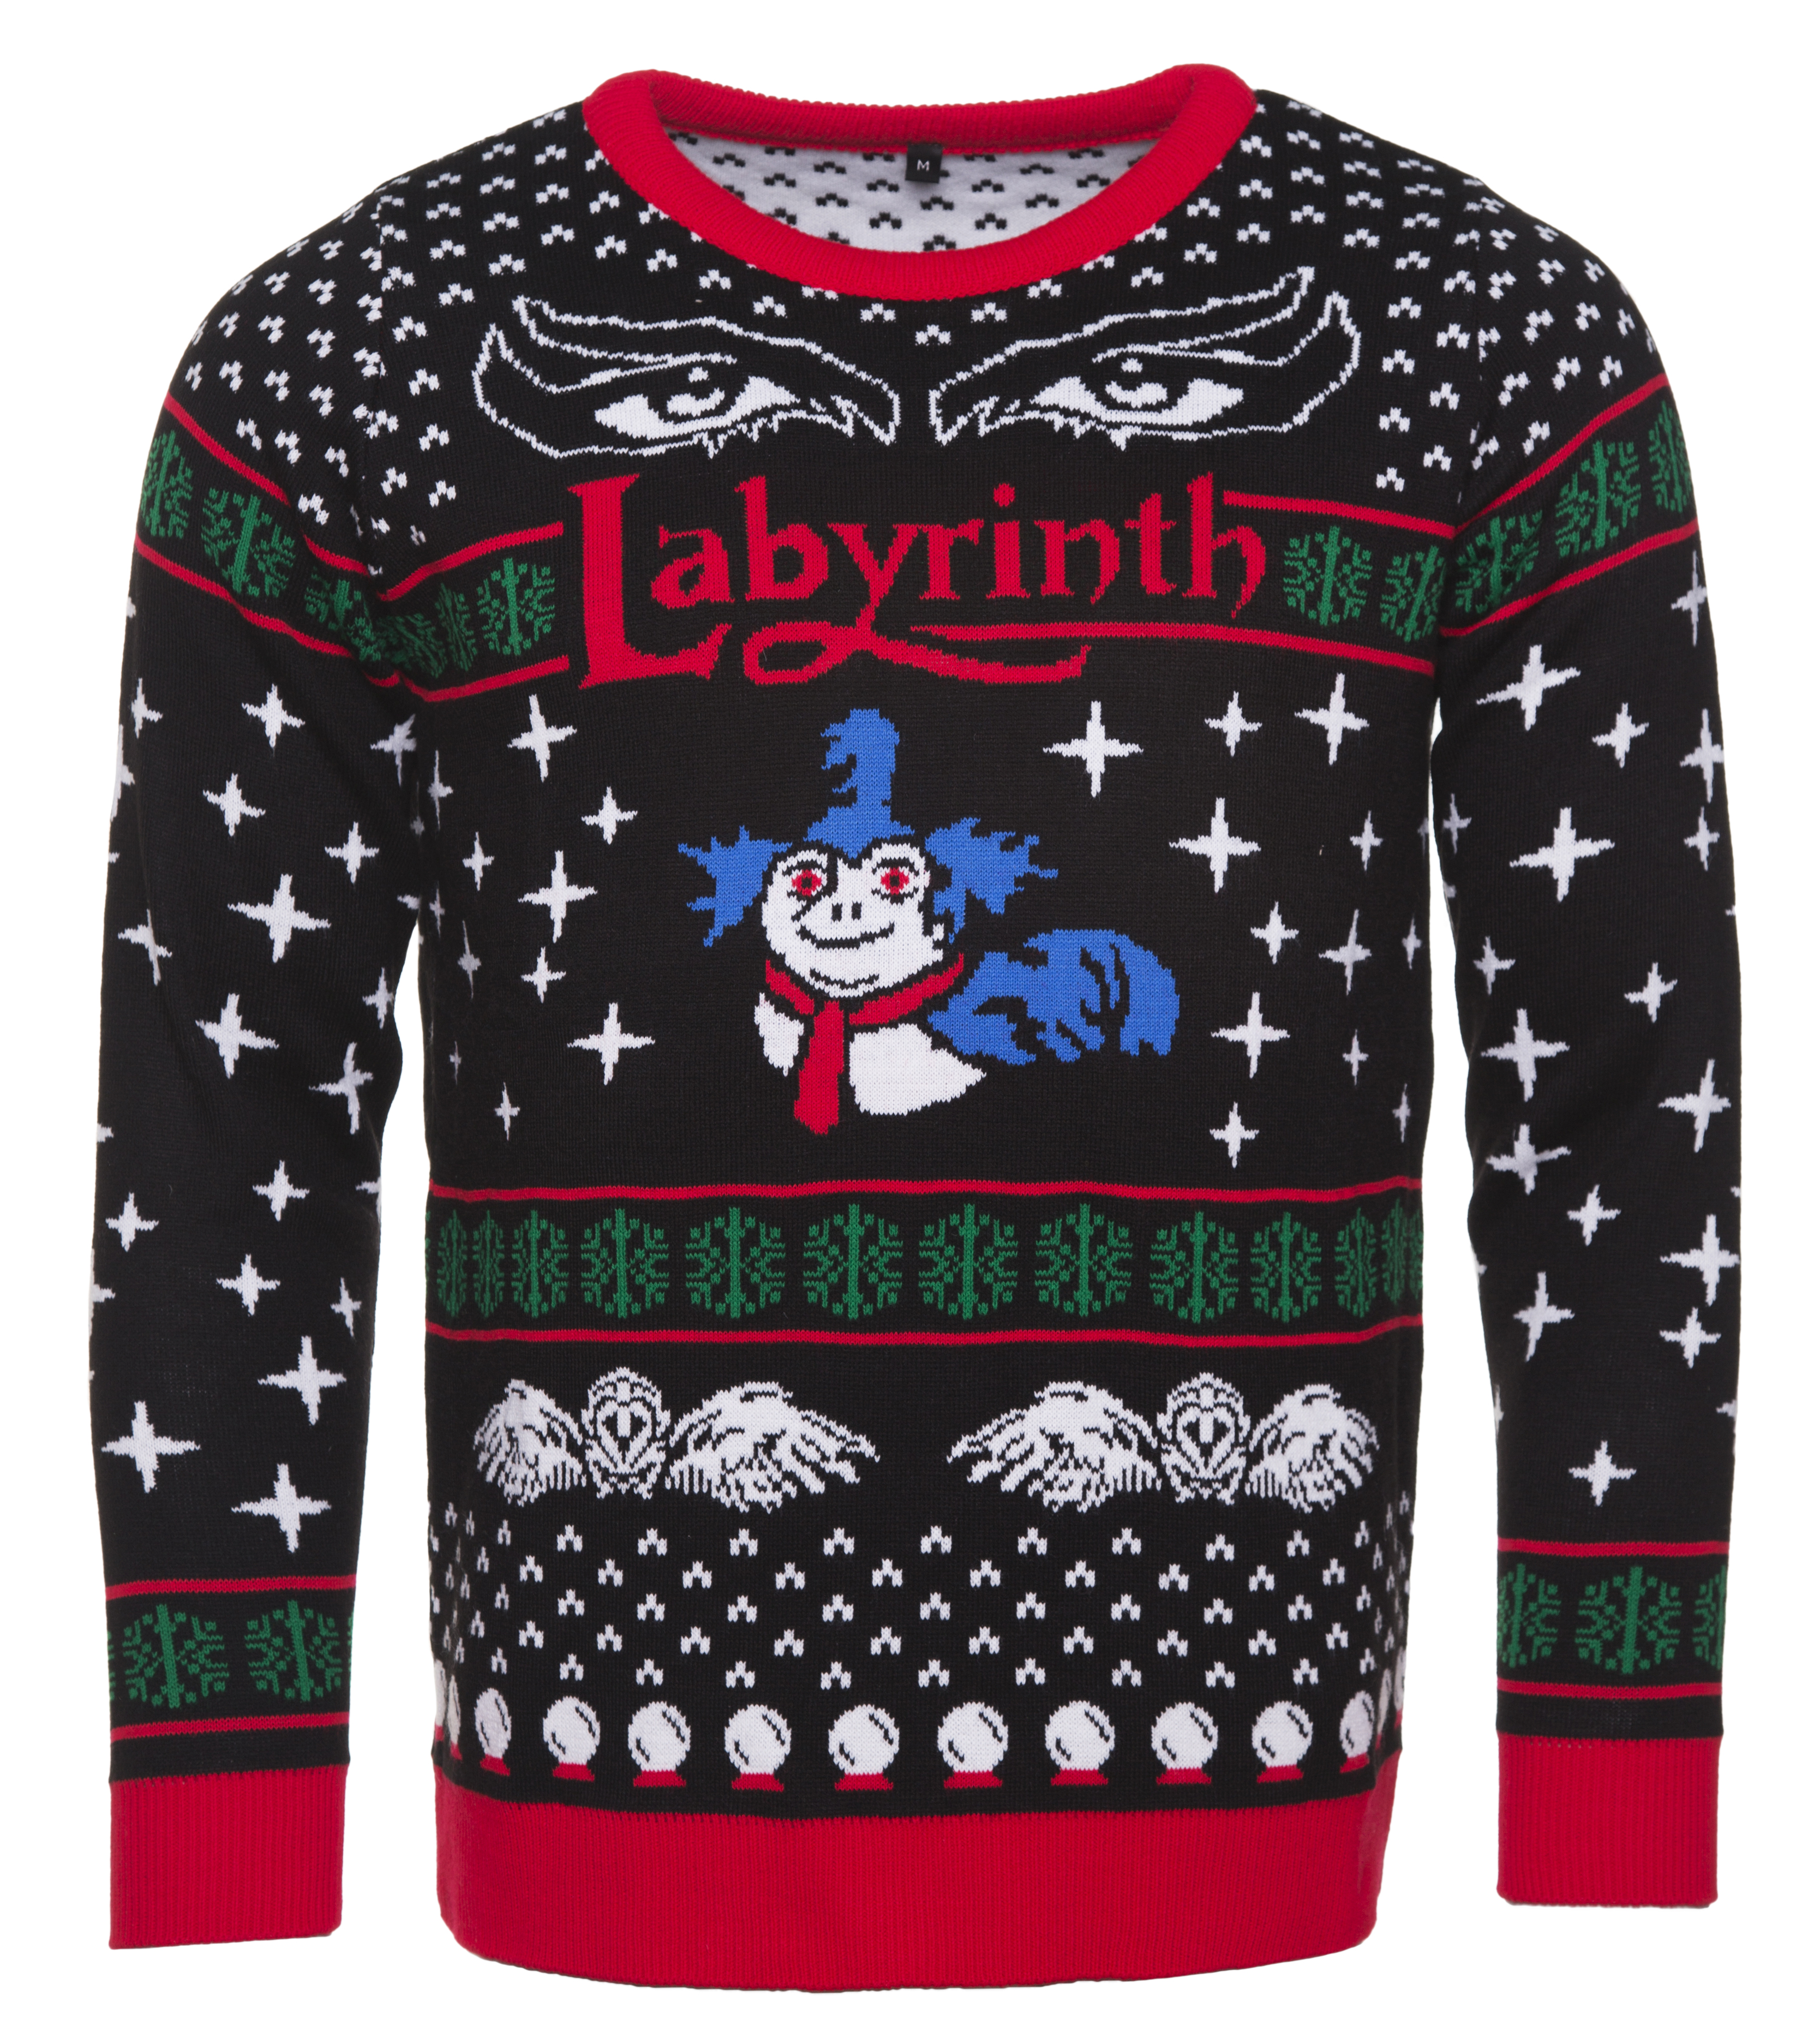 Exclusive labyrinth fairisle knitted jumper labyrinth fairisle knitted jumper high quality acrylic jacquard knit composed of 100 polyester this jumper is for life not just for christmas bankloansurffo Image collections